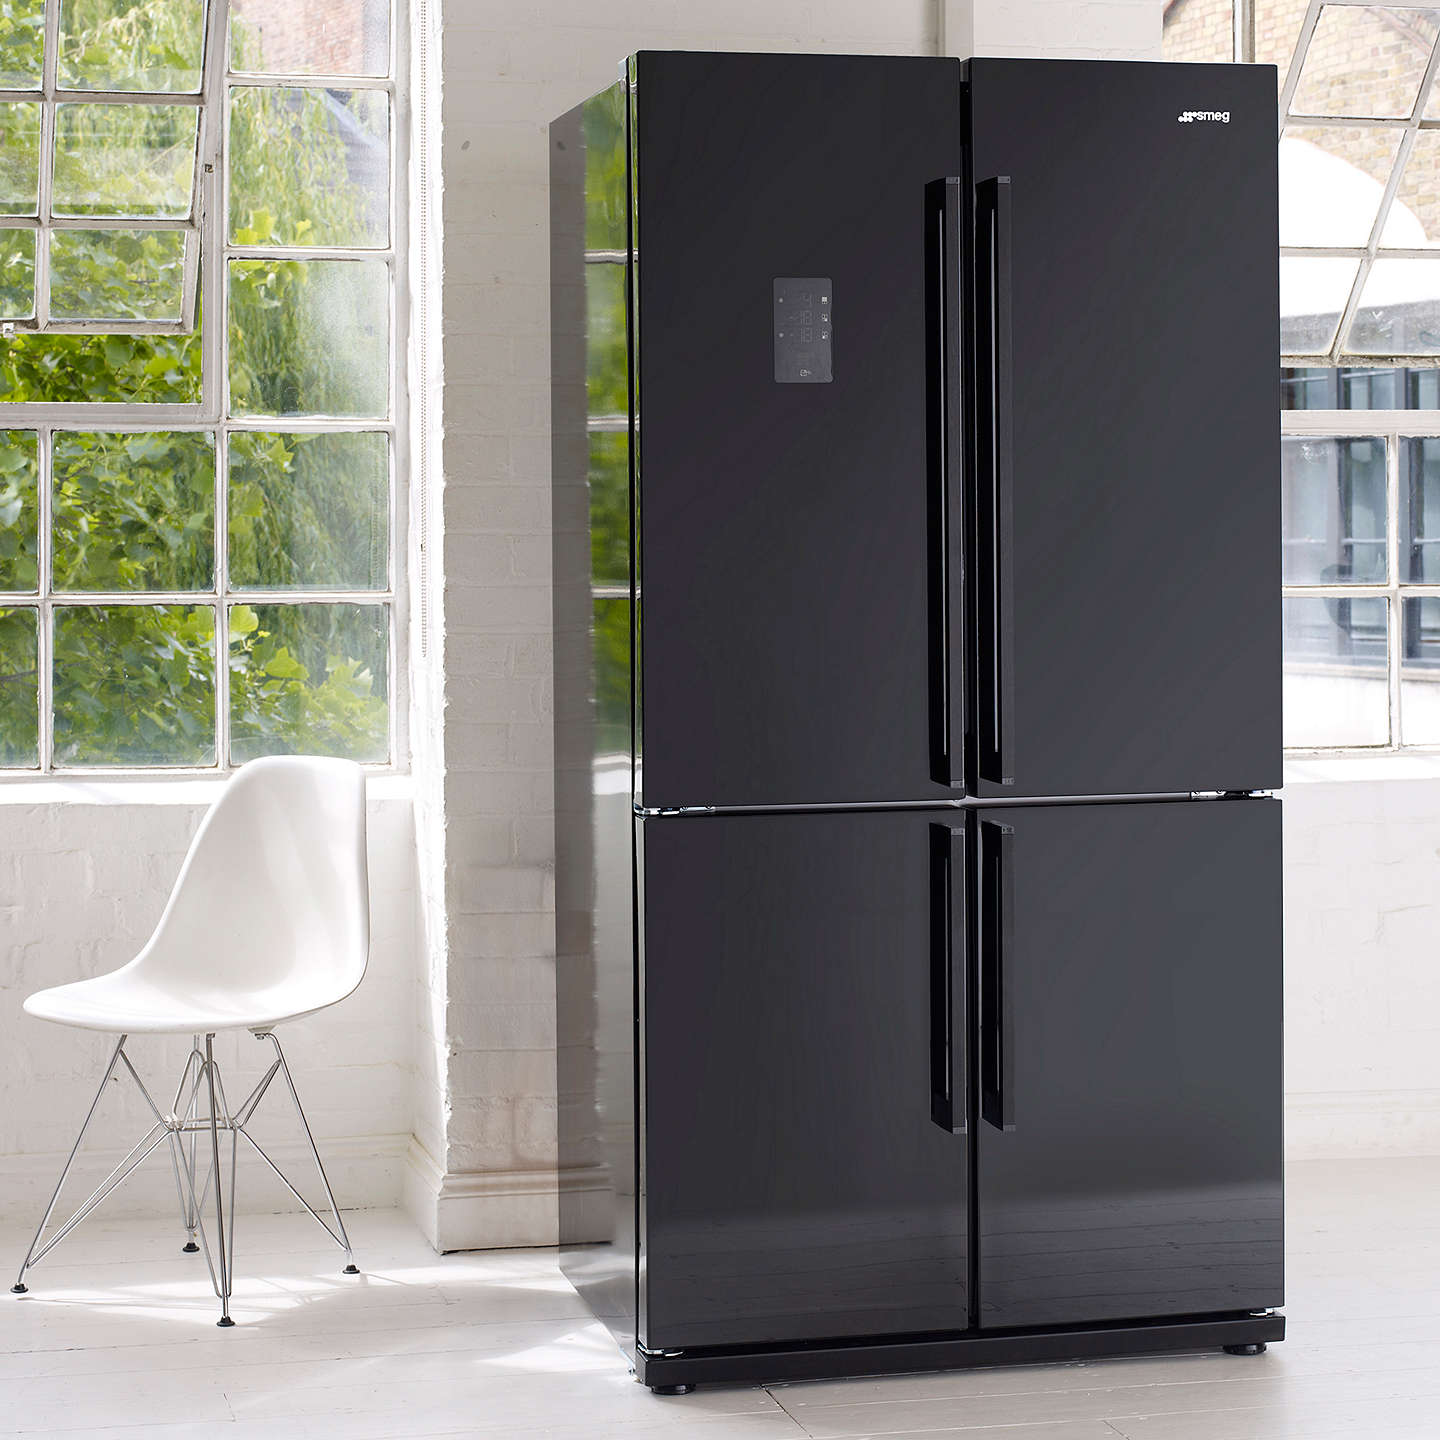 BuySmeg FQ60NPE 4-Door American Style Fridge Freezer, A+ Energy Rating, 90cm Wide, Black Online at johnlewis.com